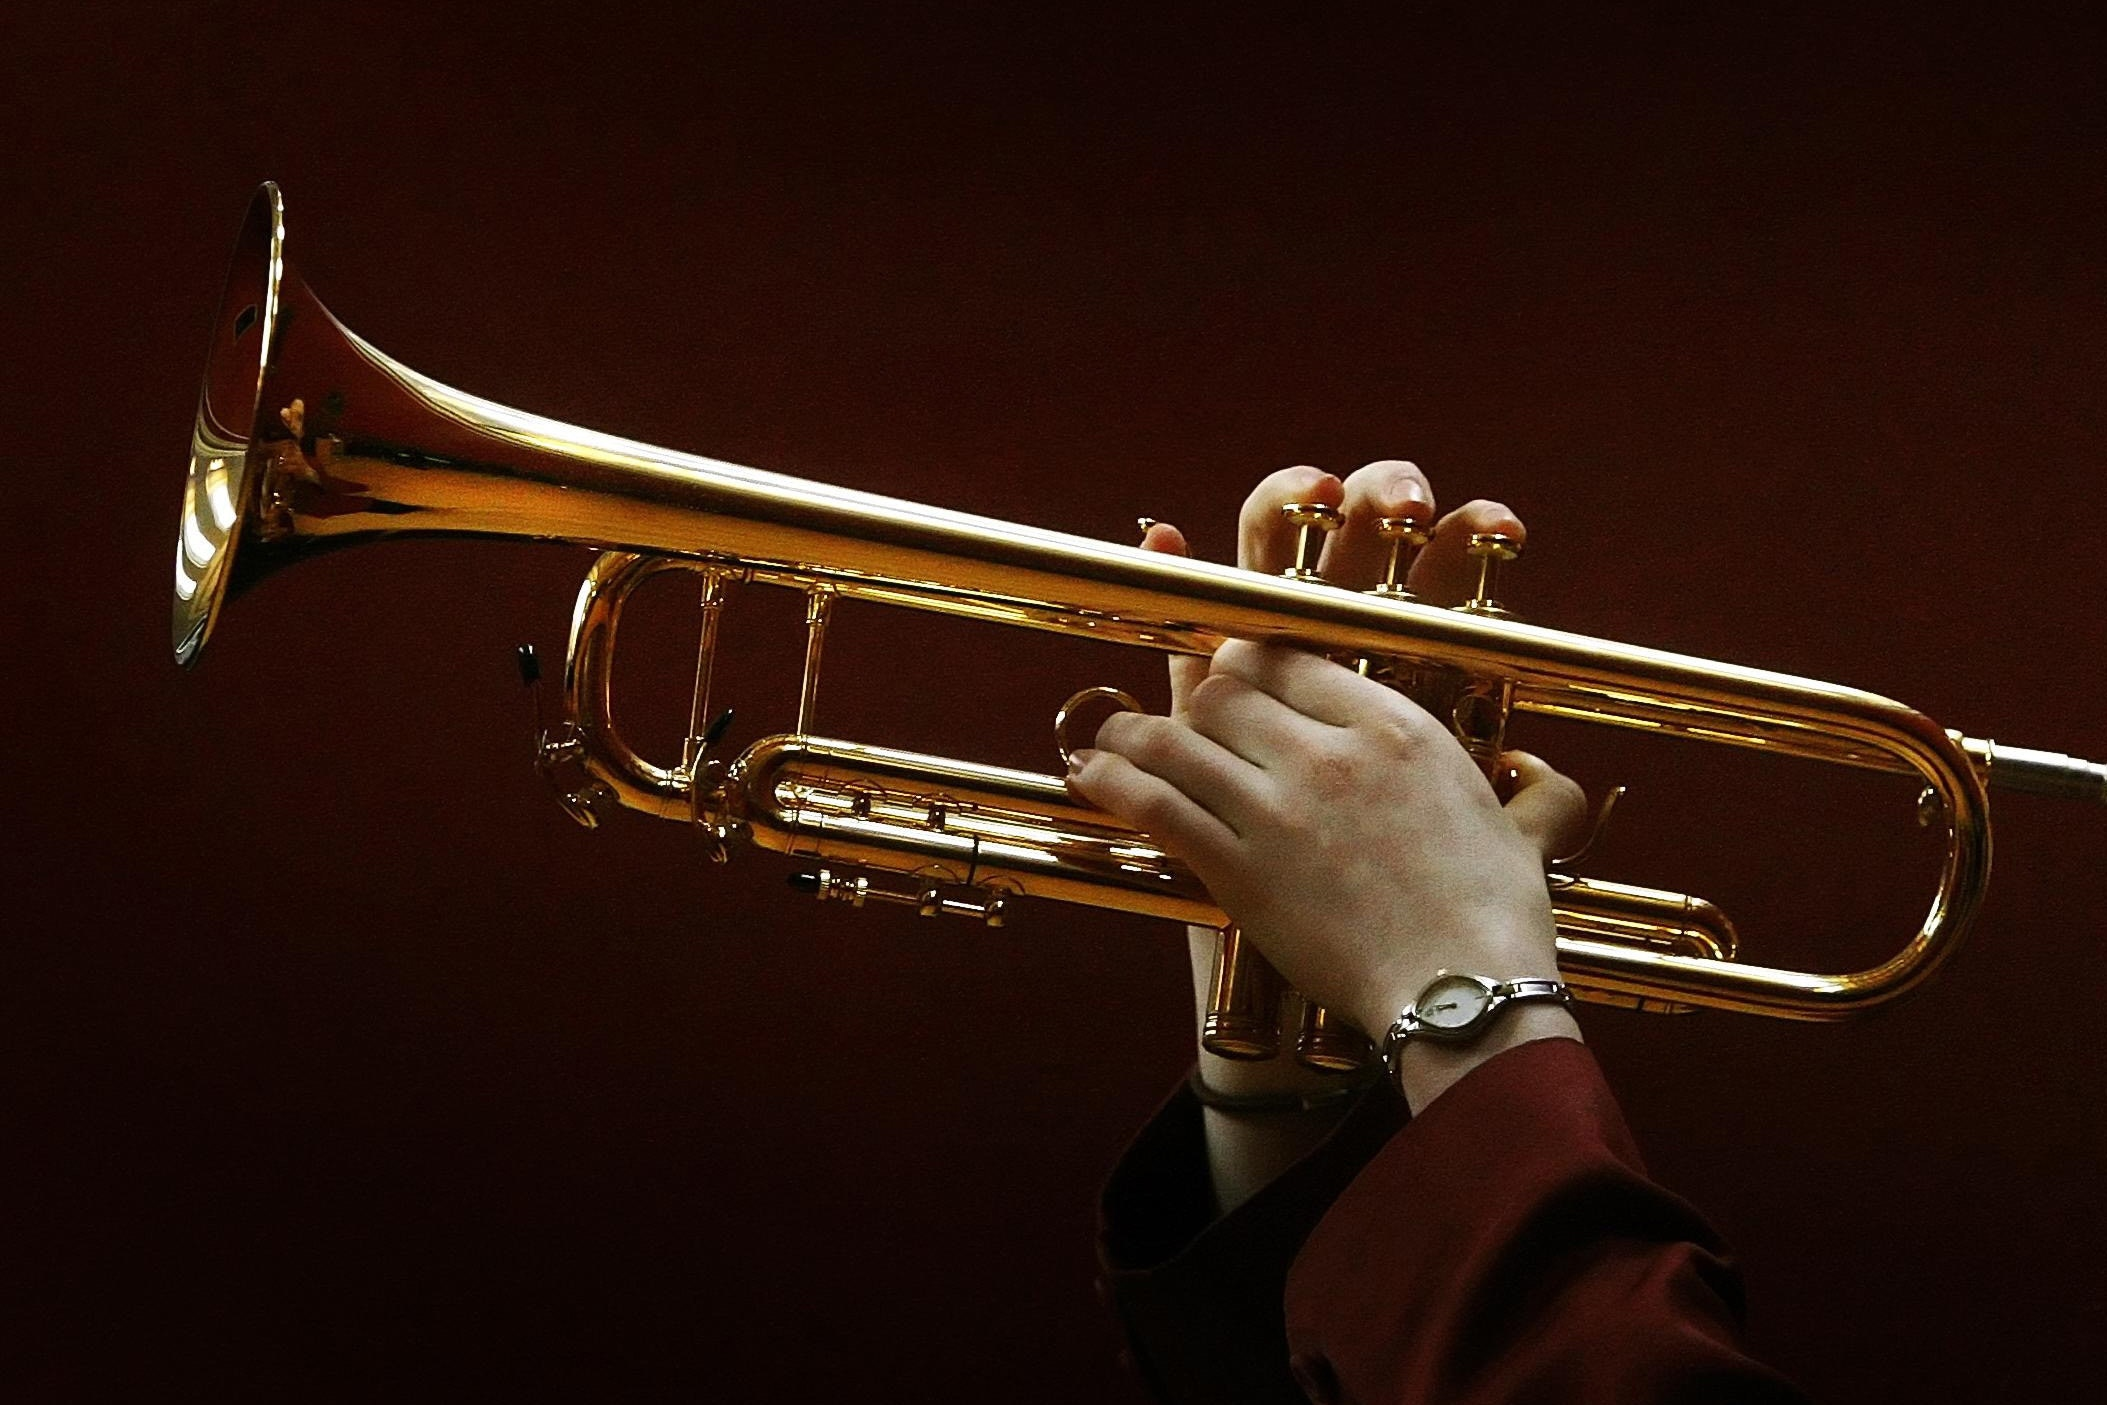 Music tuition decline will hit Scotland's culture, MSPs warned